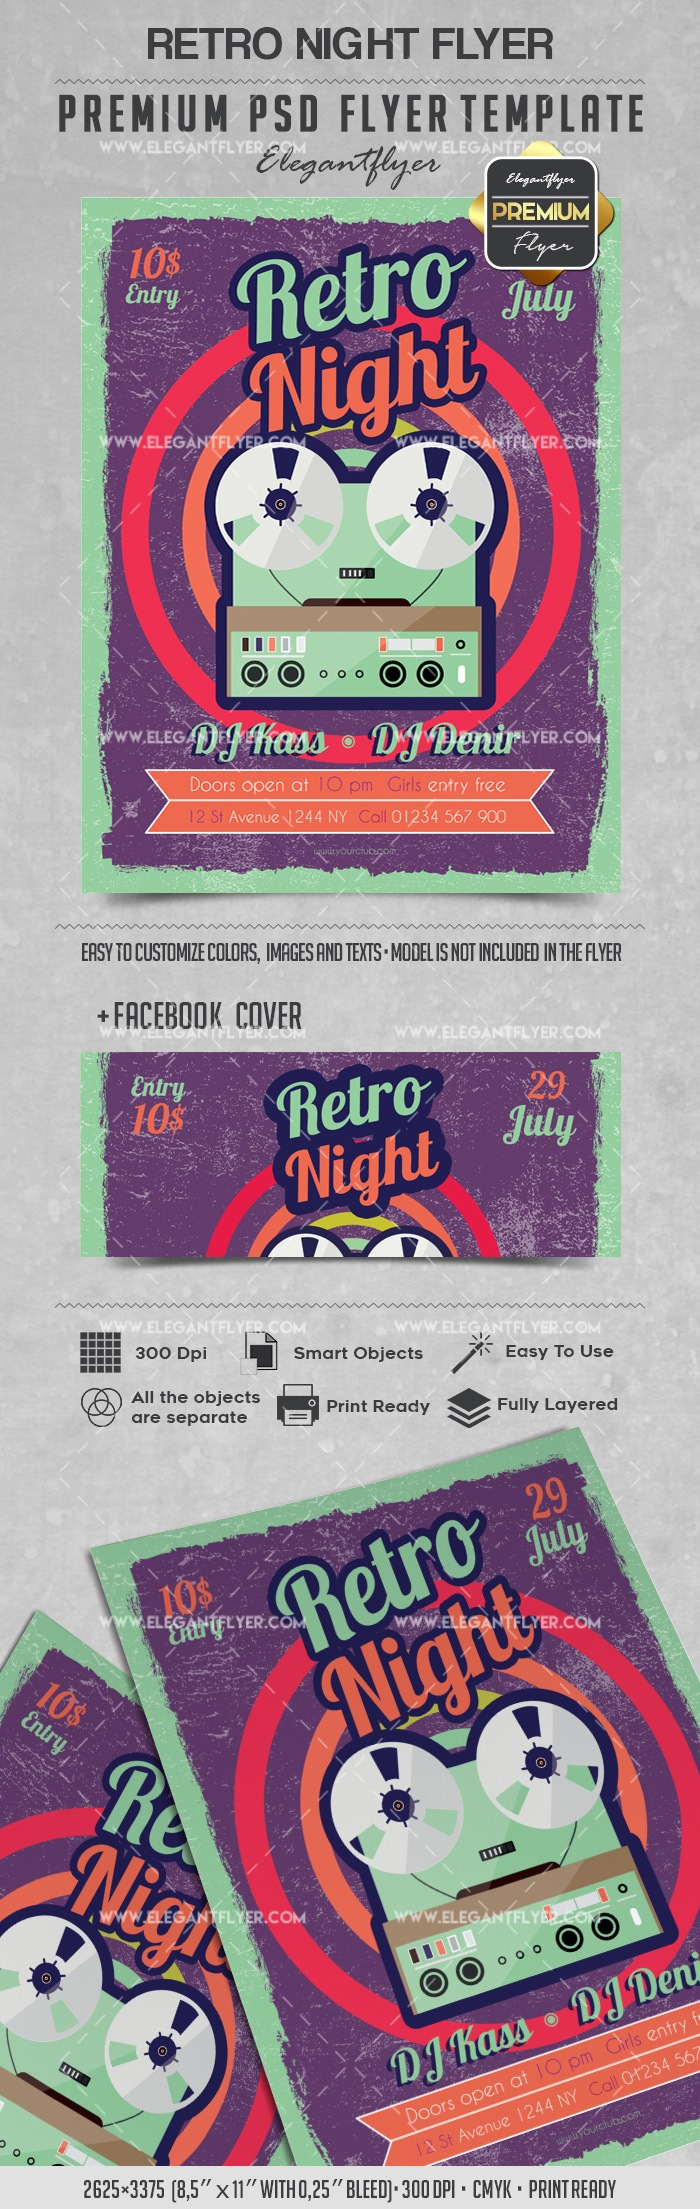 Flyer for Retro Night Party Theme